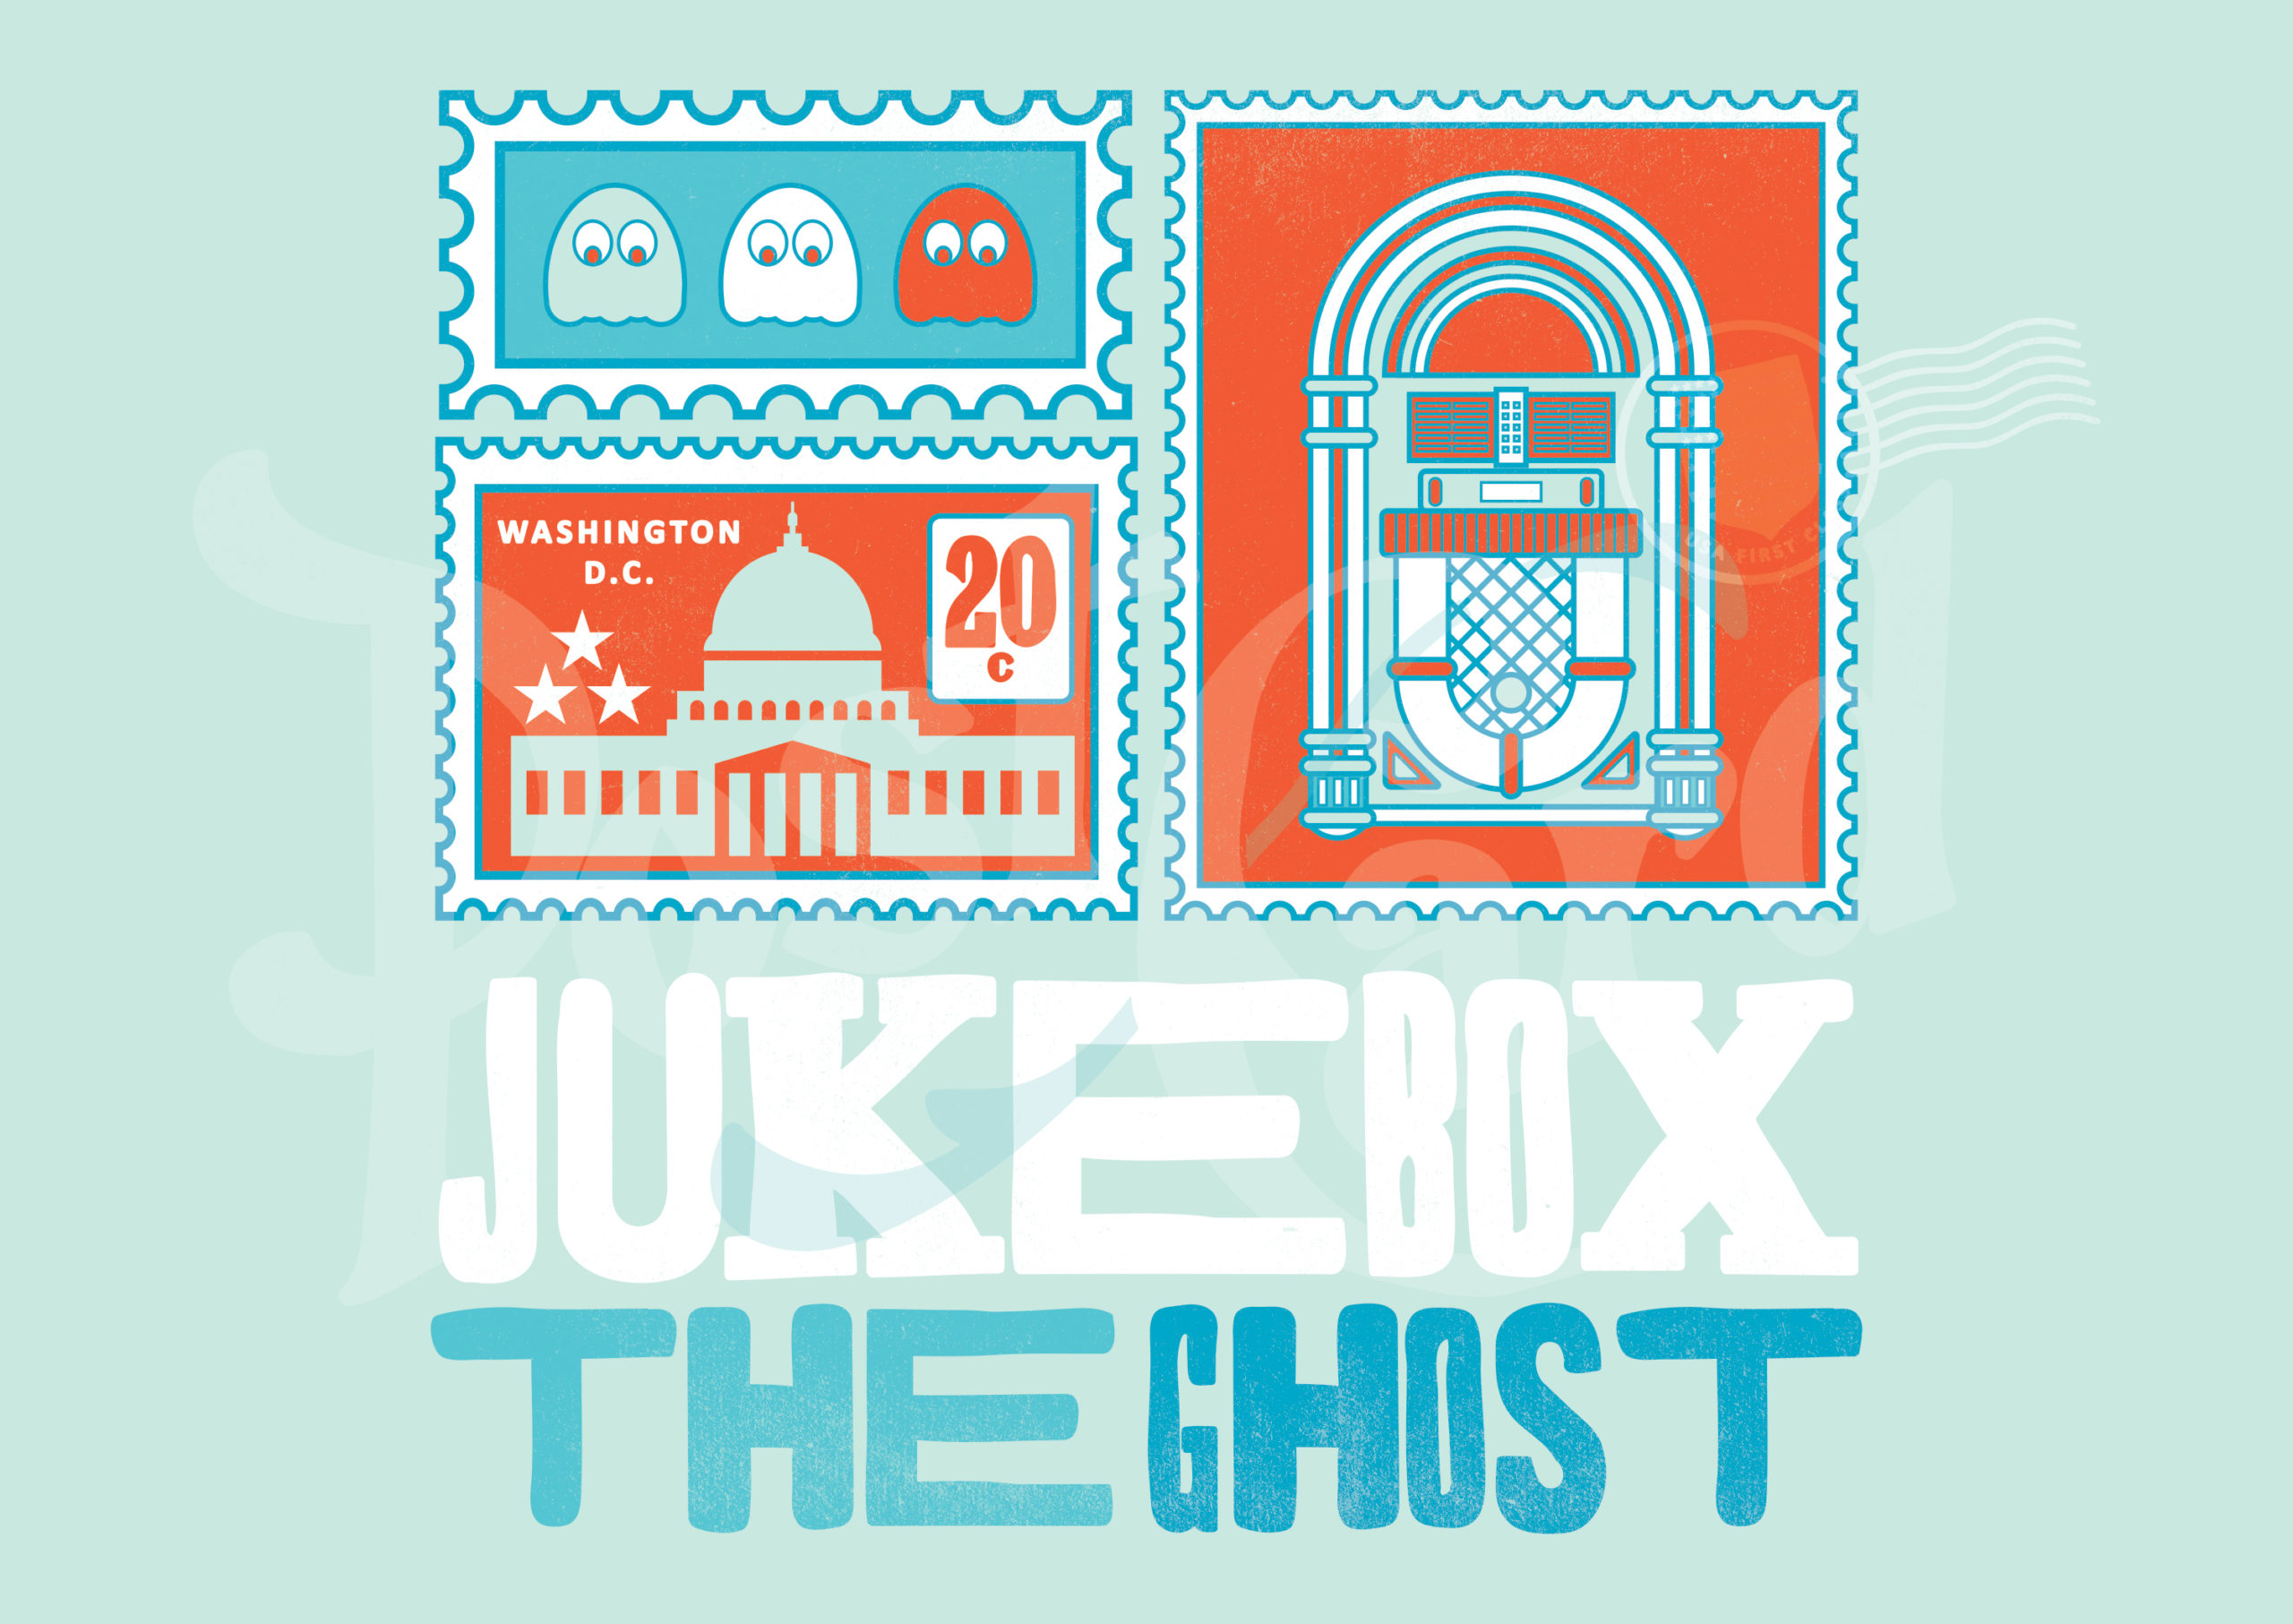 jukebox-the-ghost-postcard-v3